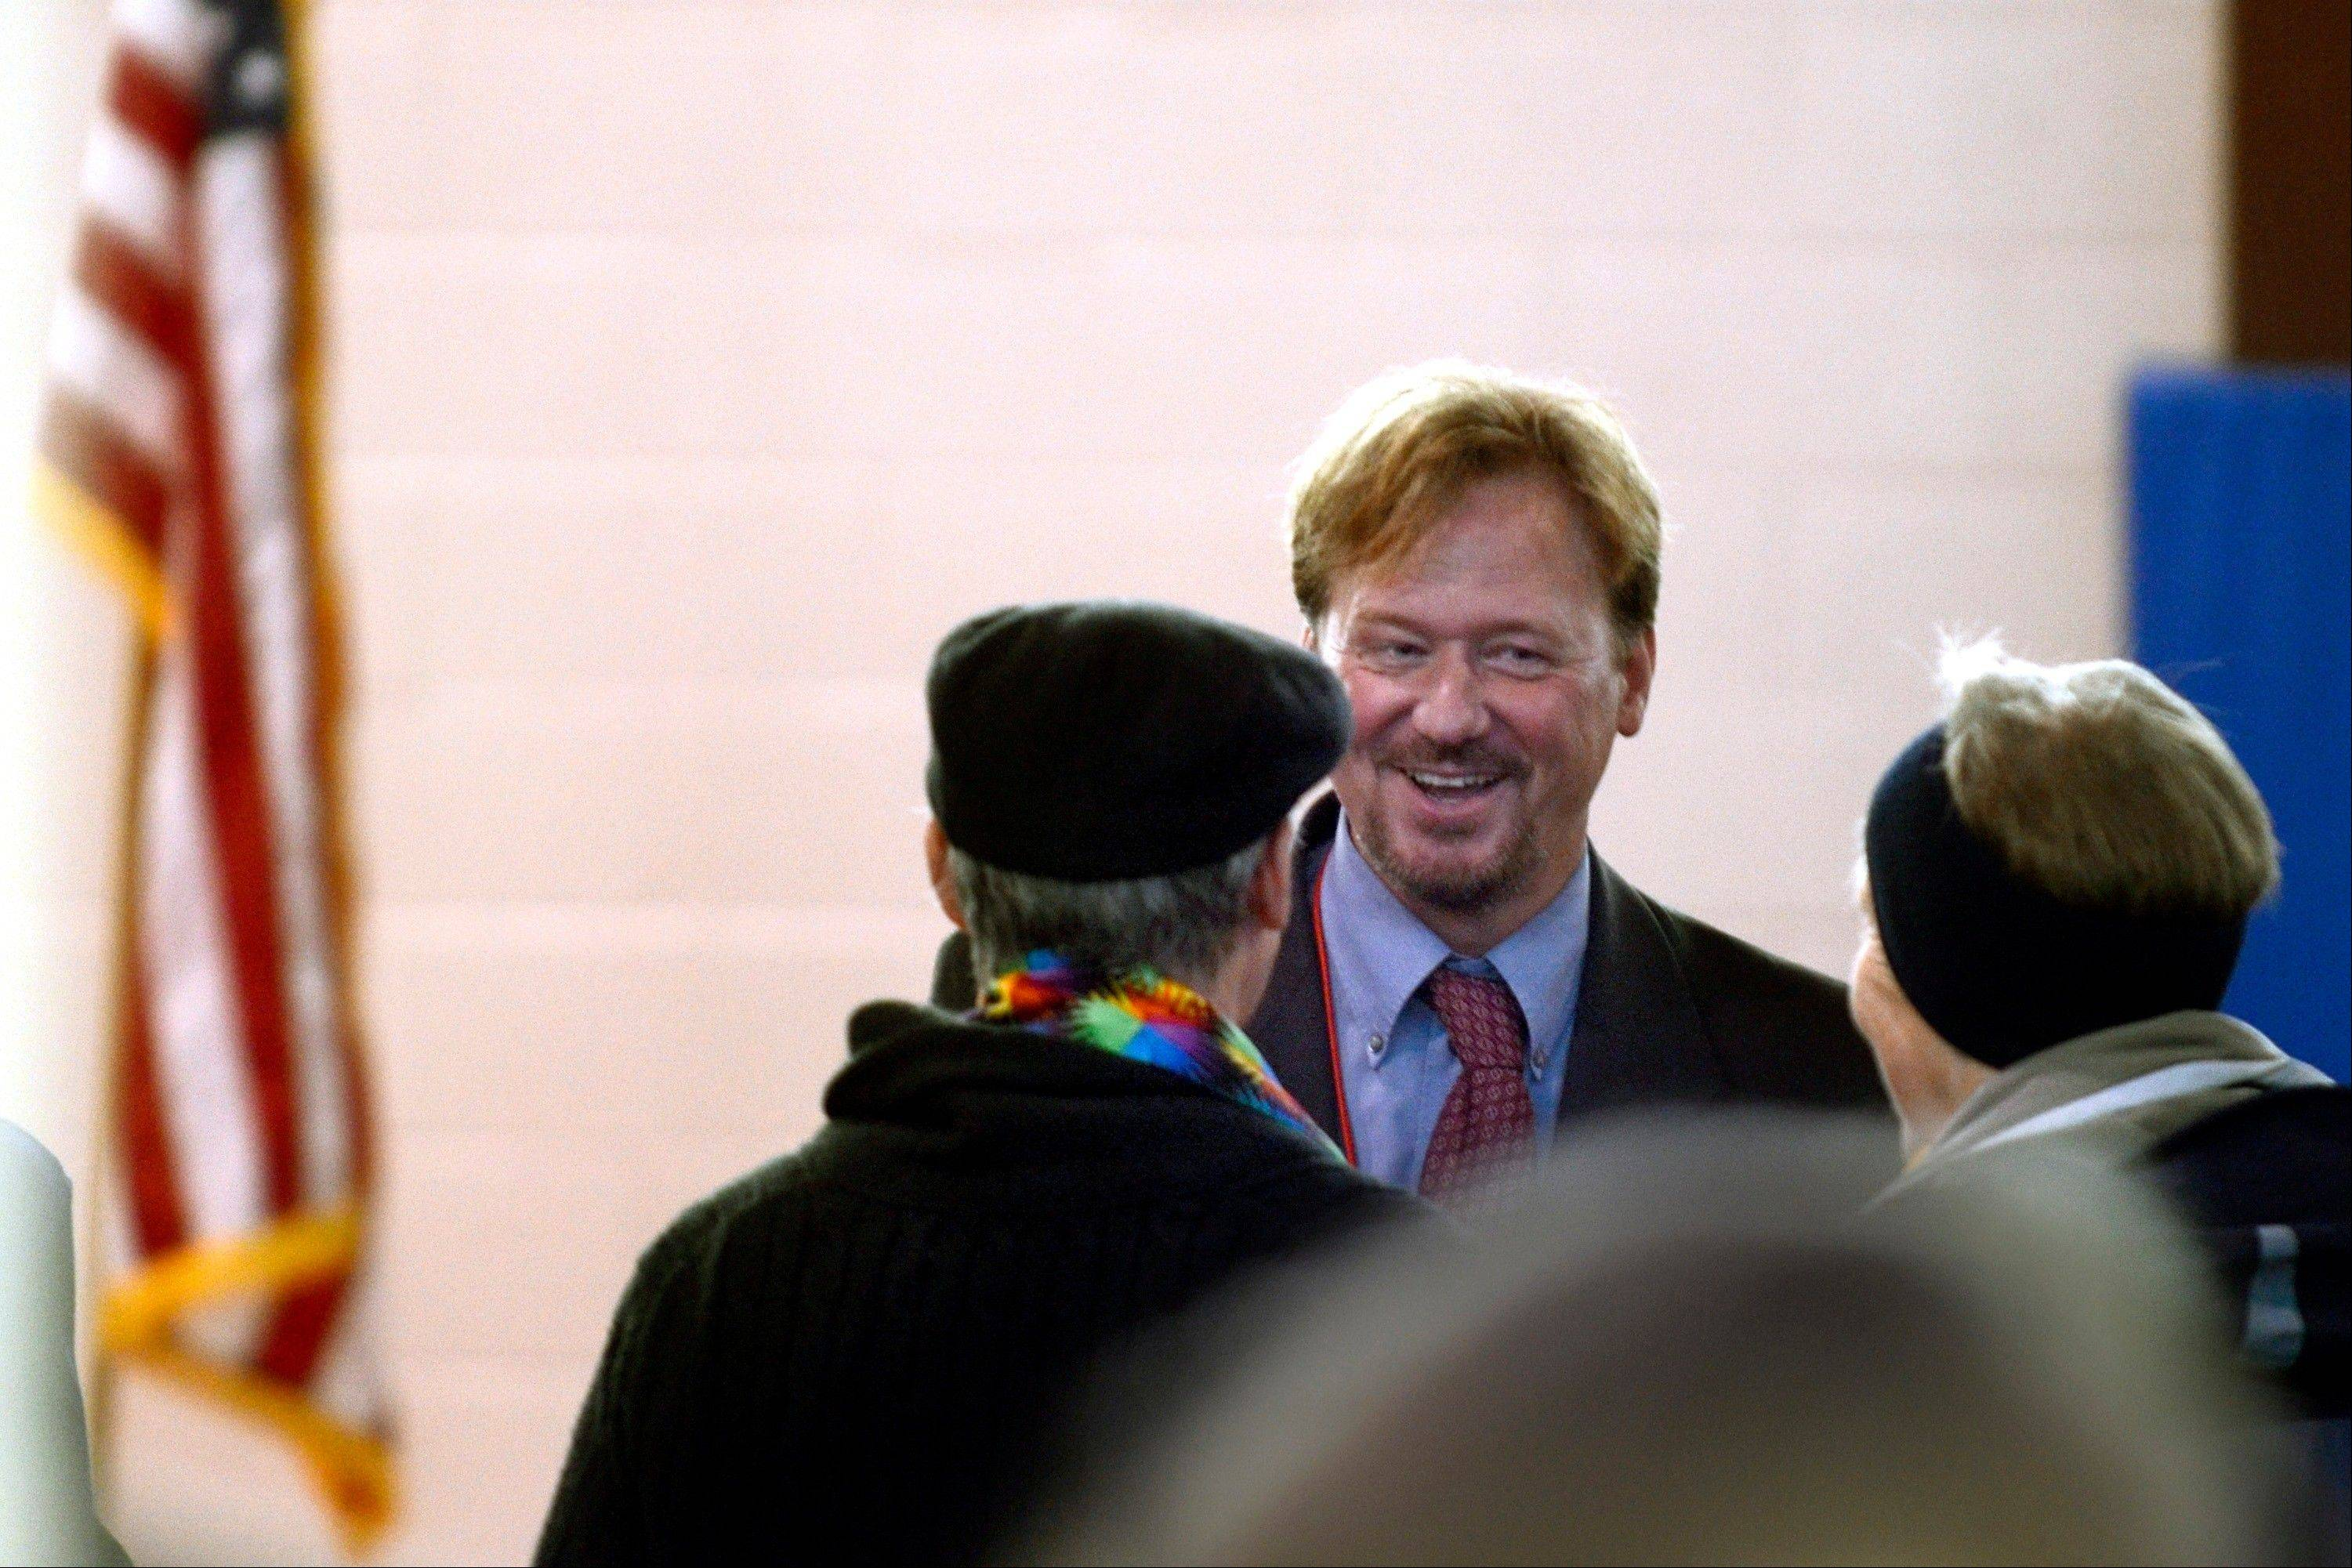 Rev. Frank Schaefer talks Monday inside the Rec. center as his trial breaks for lunch in Spring City, Pa. Schaefer could learn Tuesday if he'll be defrocked.